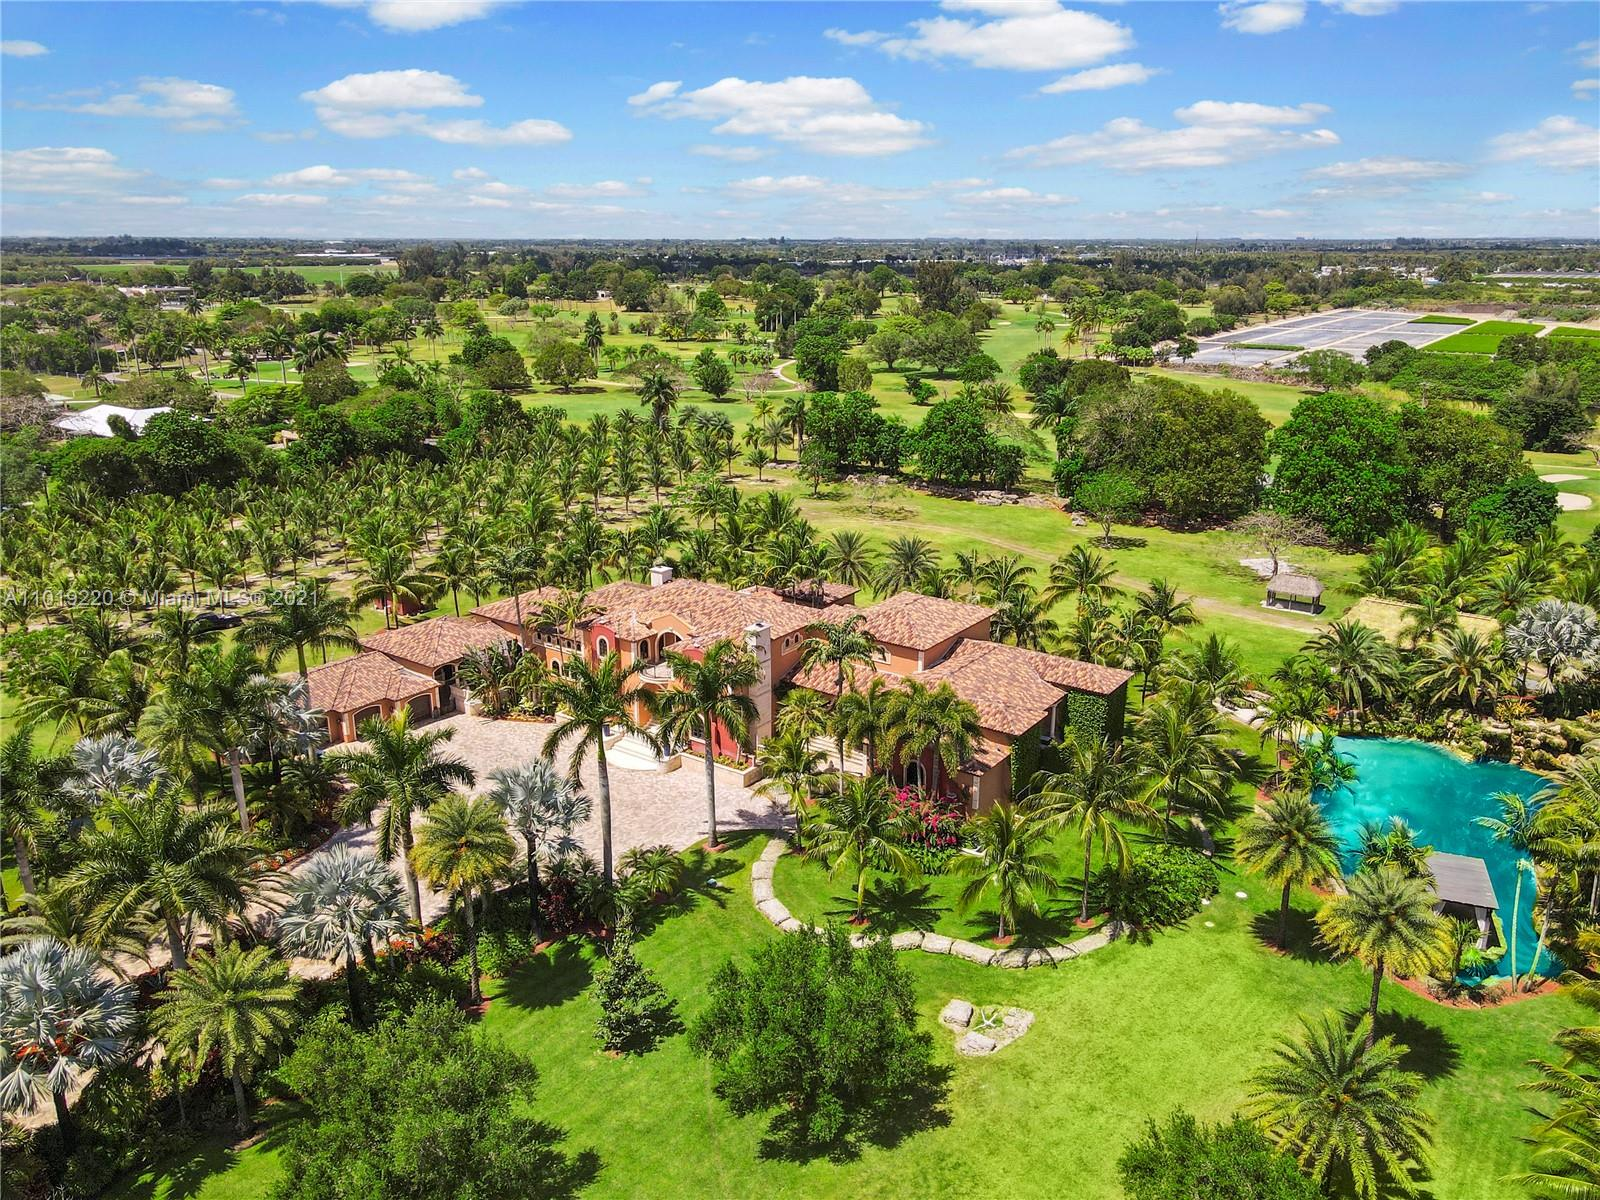 10 ACRE SPRAWLING ESTATE HOME IN REDLAND WITH SPRING FED SWIMMABLE GROTTO W FALLS.